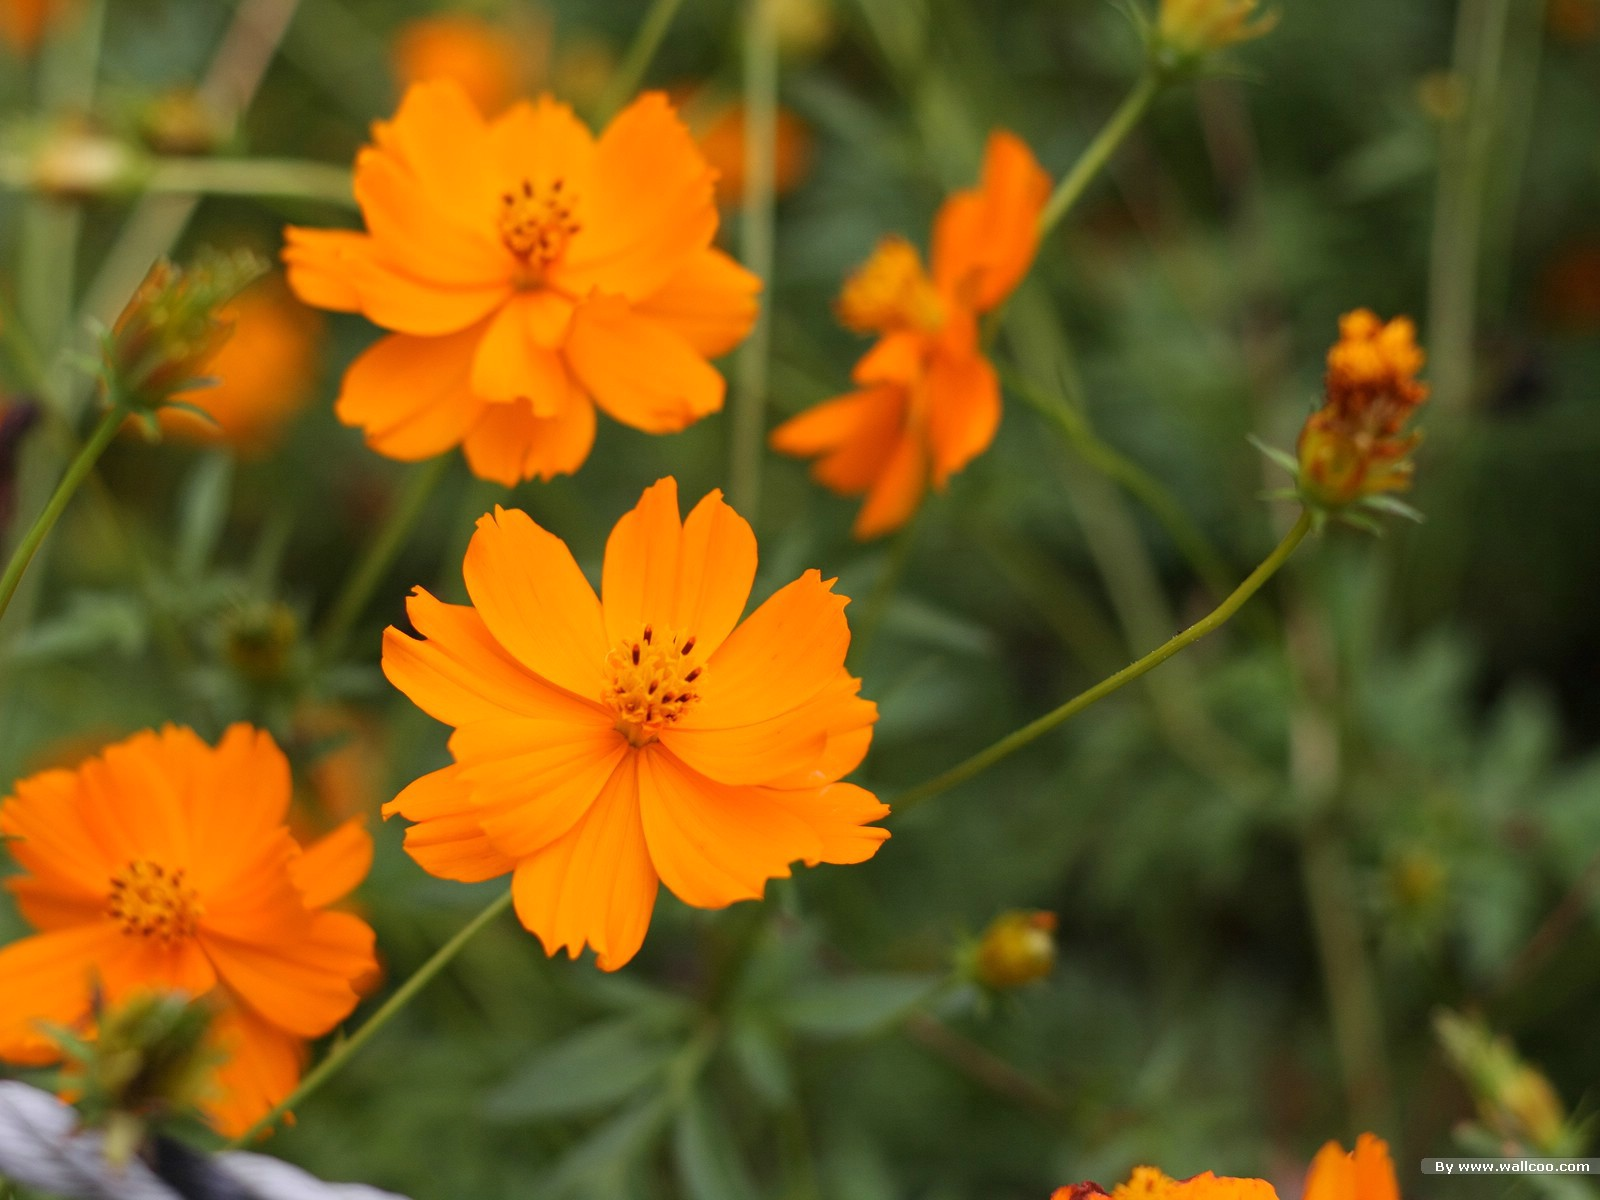 Autumn Flowers Cosmos Flowers Flower graphy Wallpaper 40